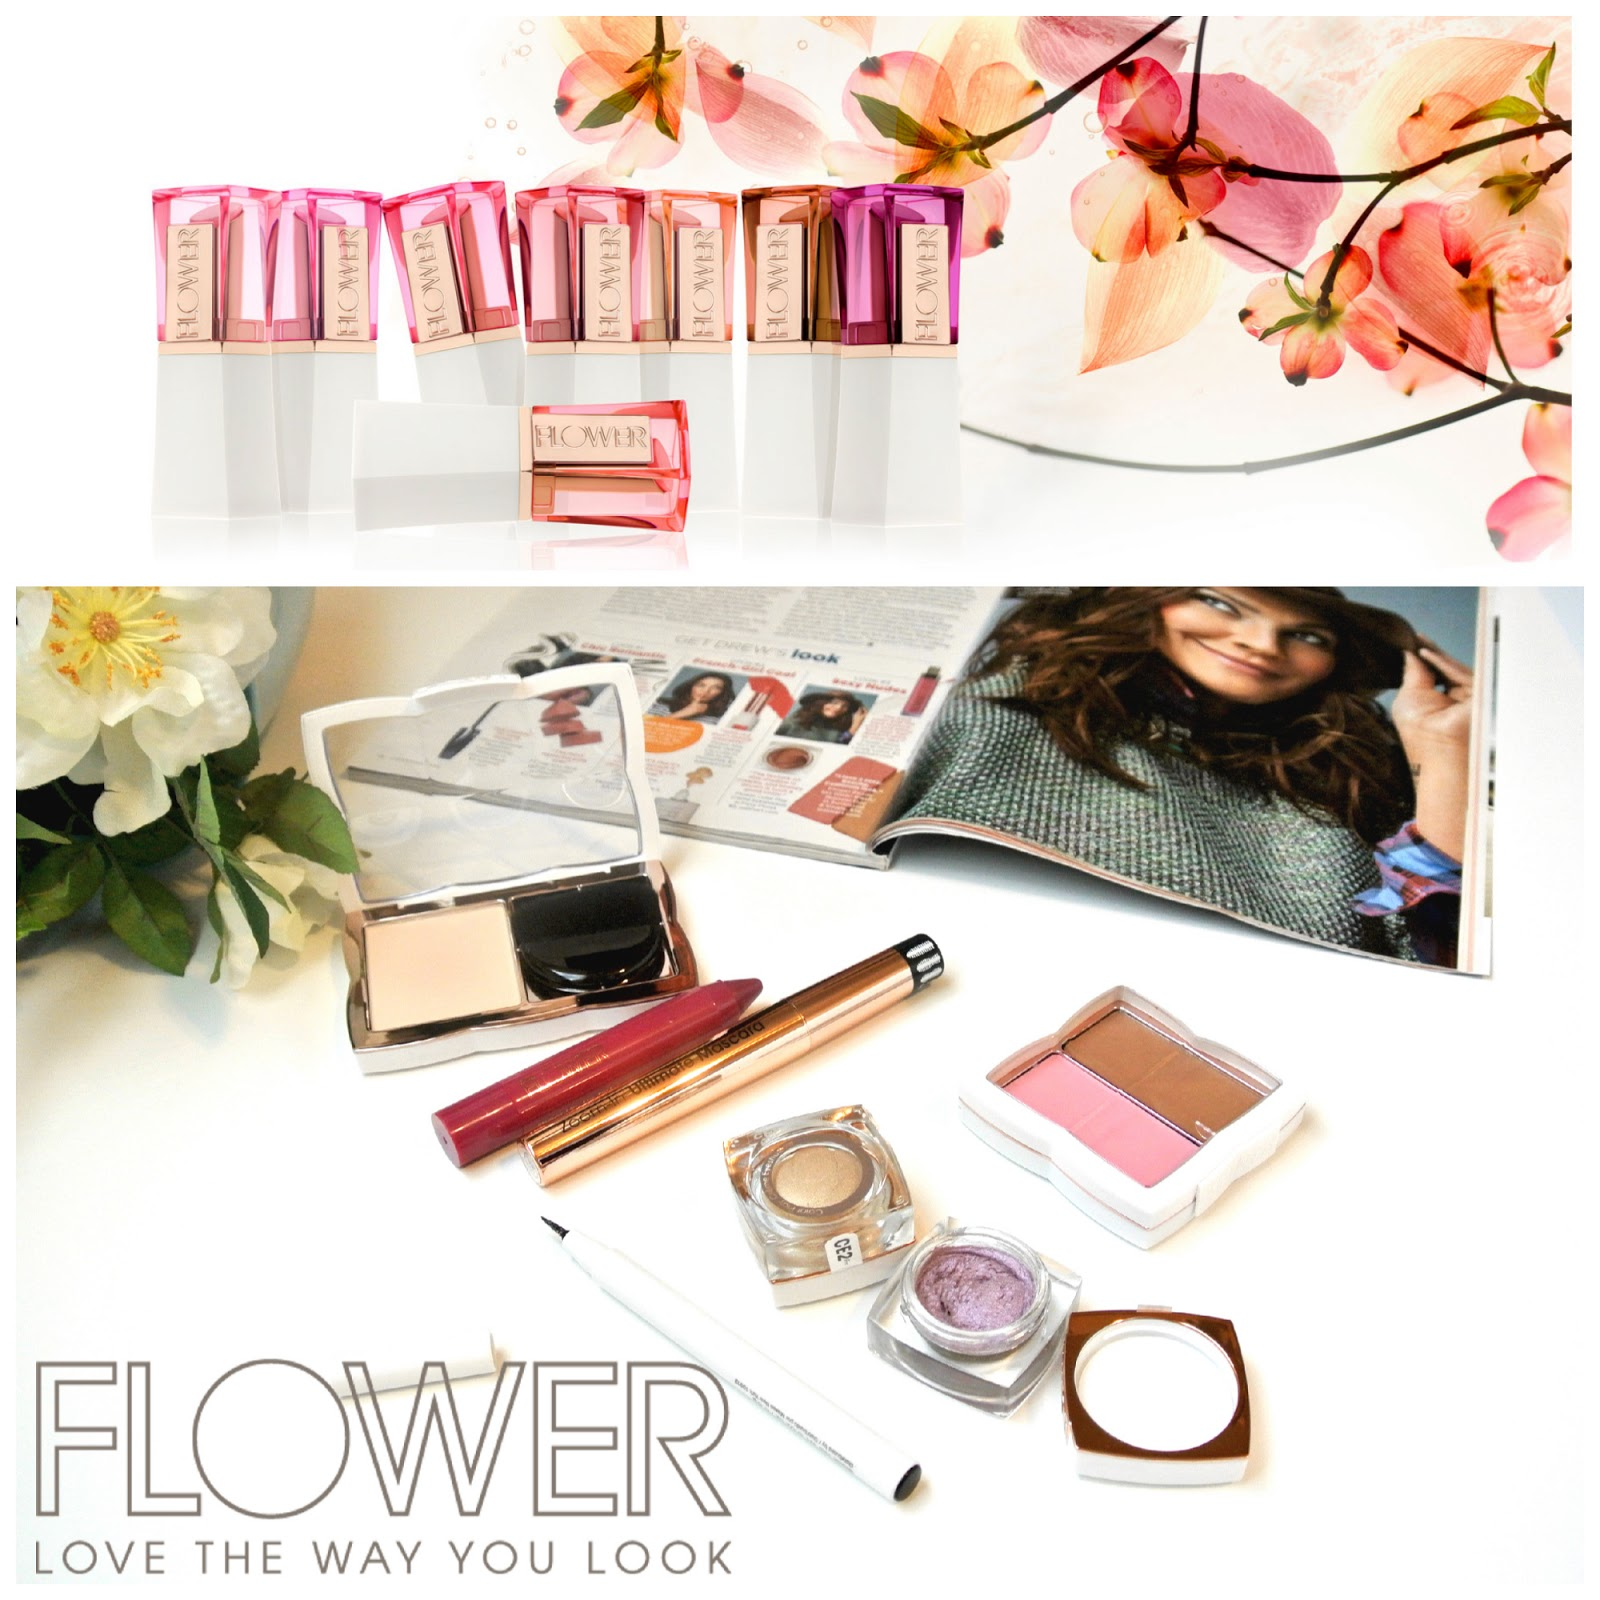 The beauty snoop walmart beauty a flower cosmetics review this izmirmasajfo